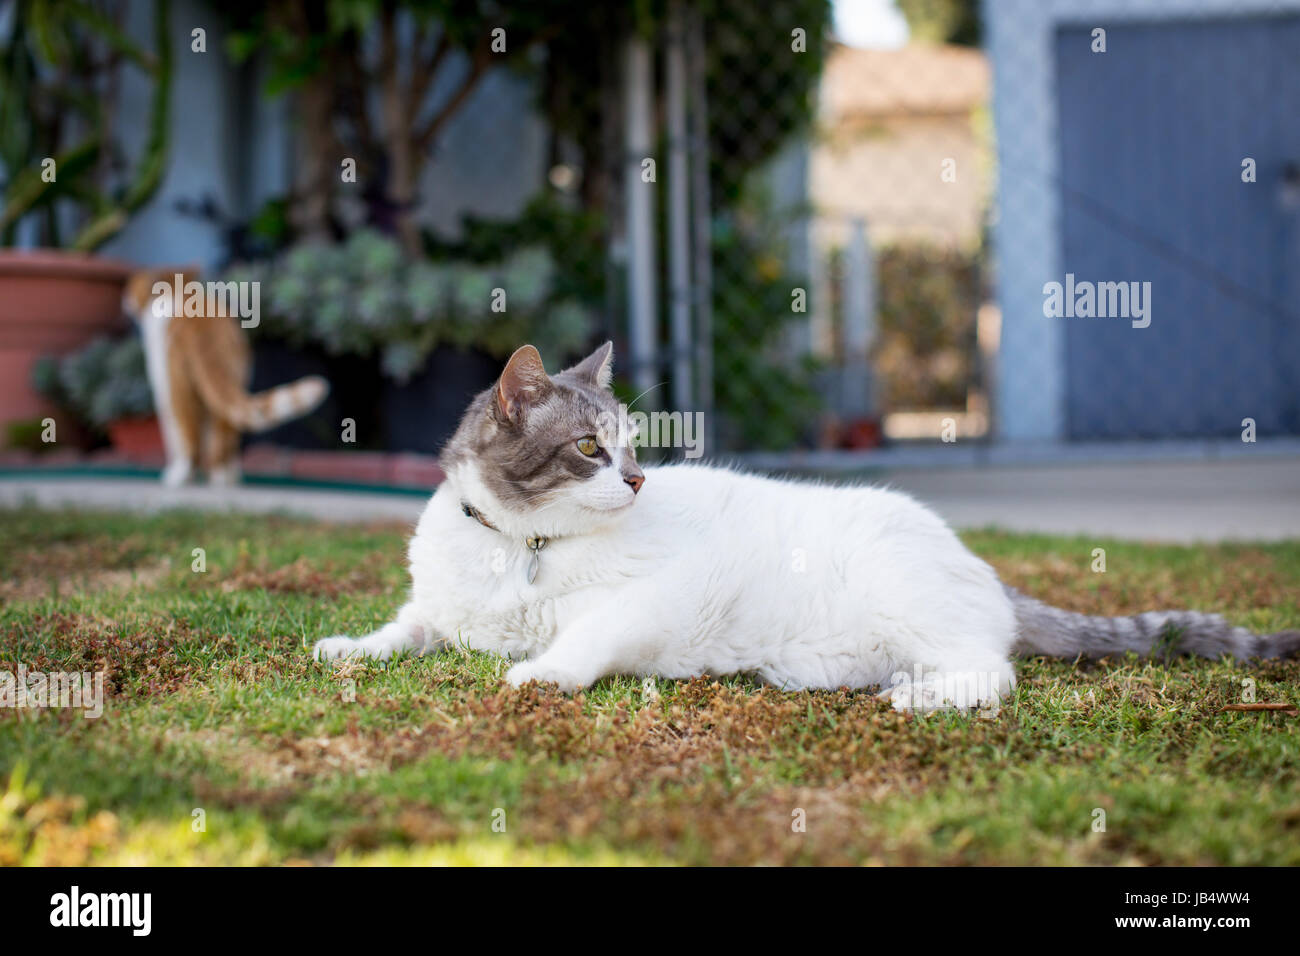 Two cats looking relaxed and content in a front yard / neighborhood setting. Late day, golden light. - Stock Image